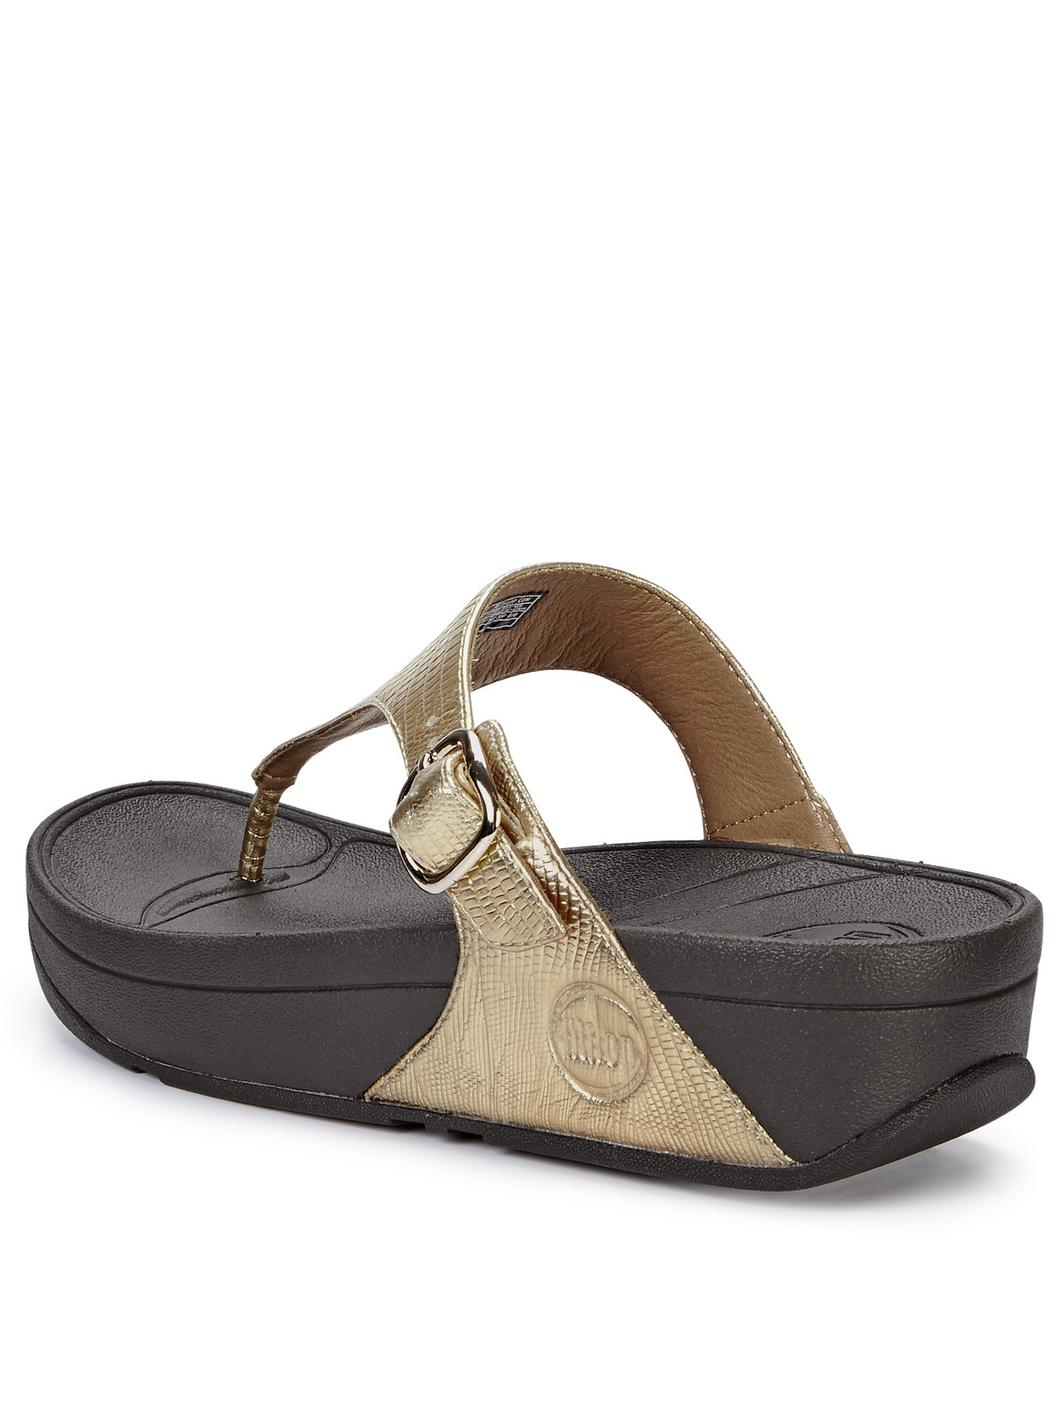 ecfdca65a10 Fitflop The Skinny Gold